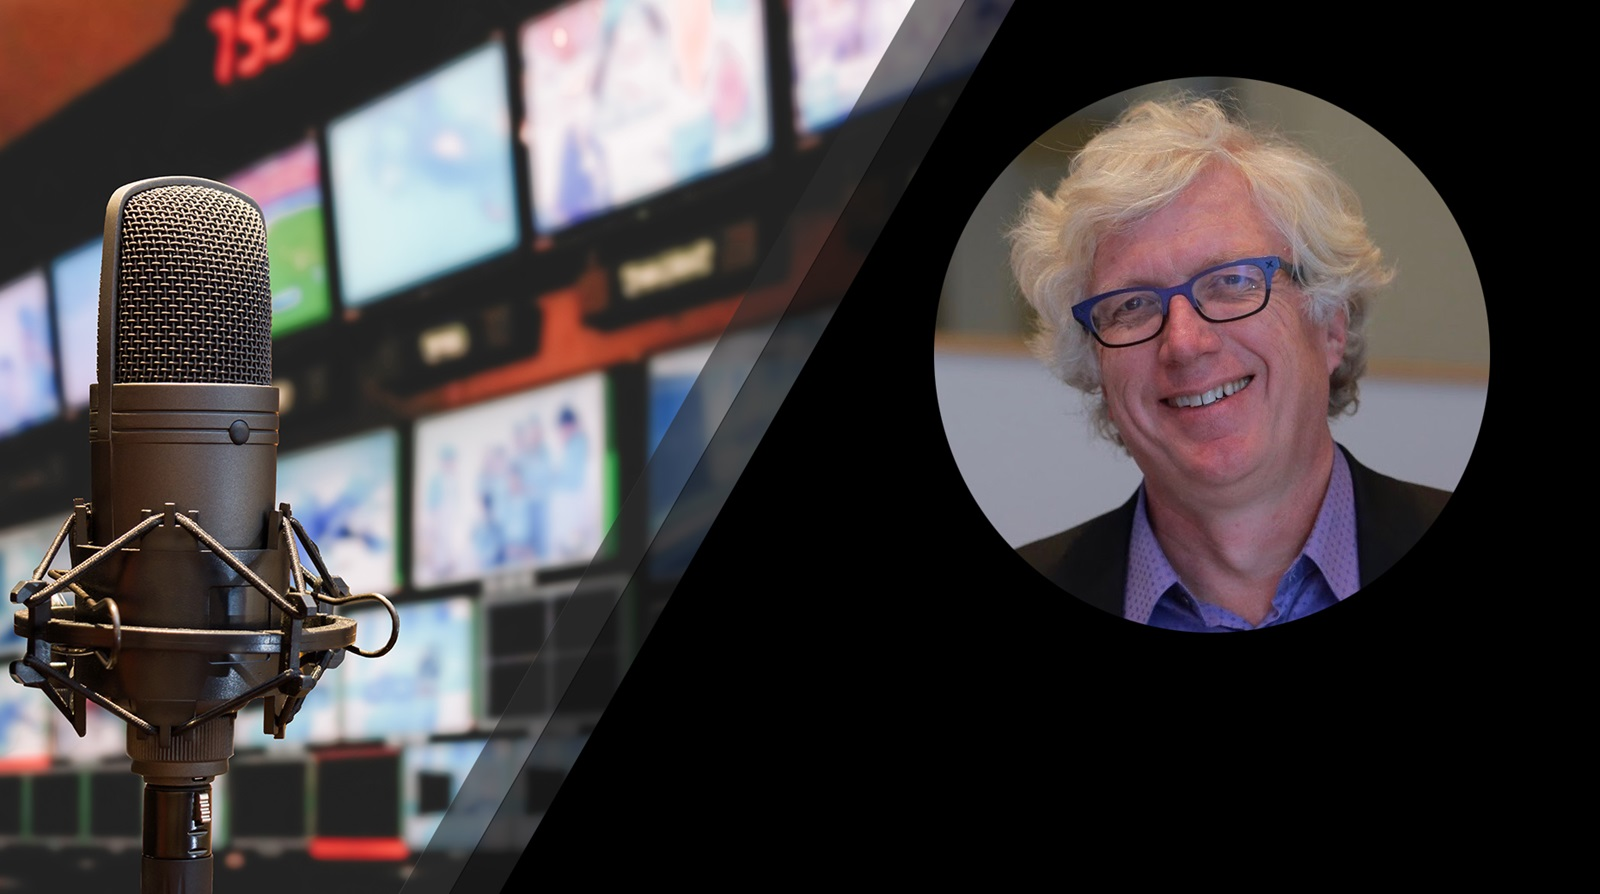 Bruce MacCormack, co-lead of Project Origin, on the Making the Media podcast